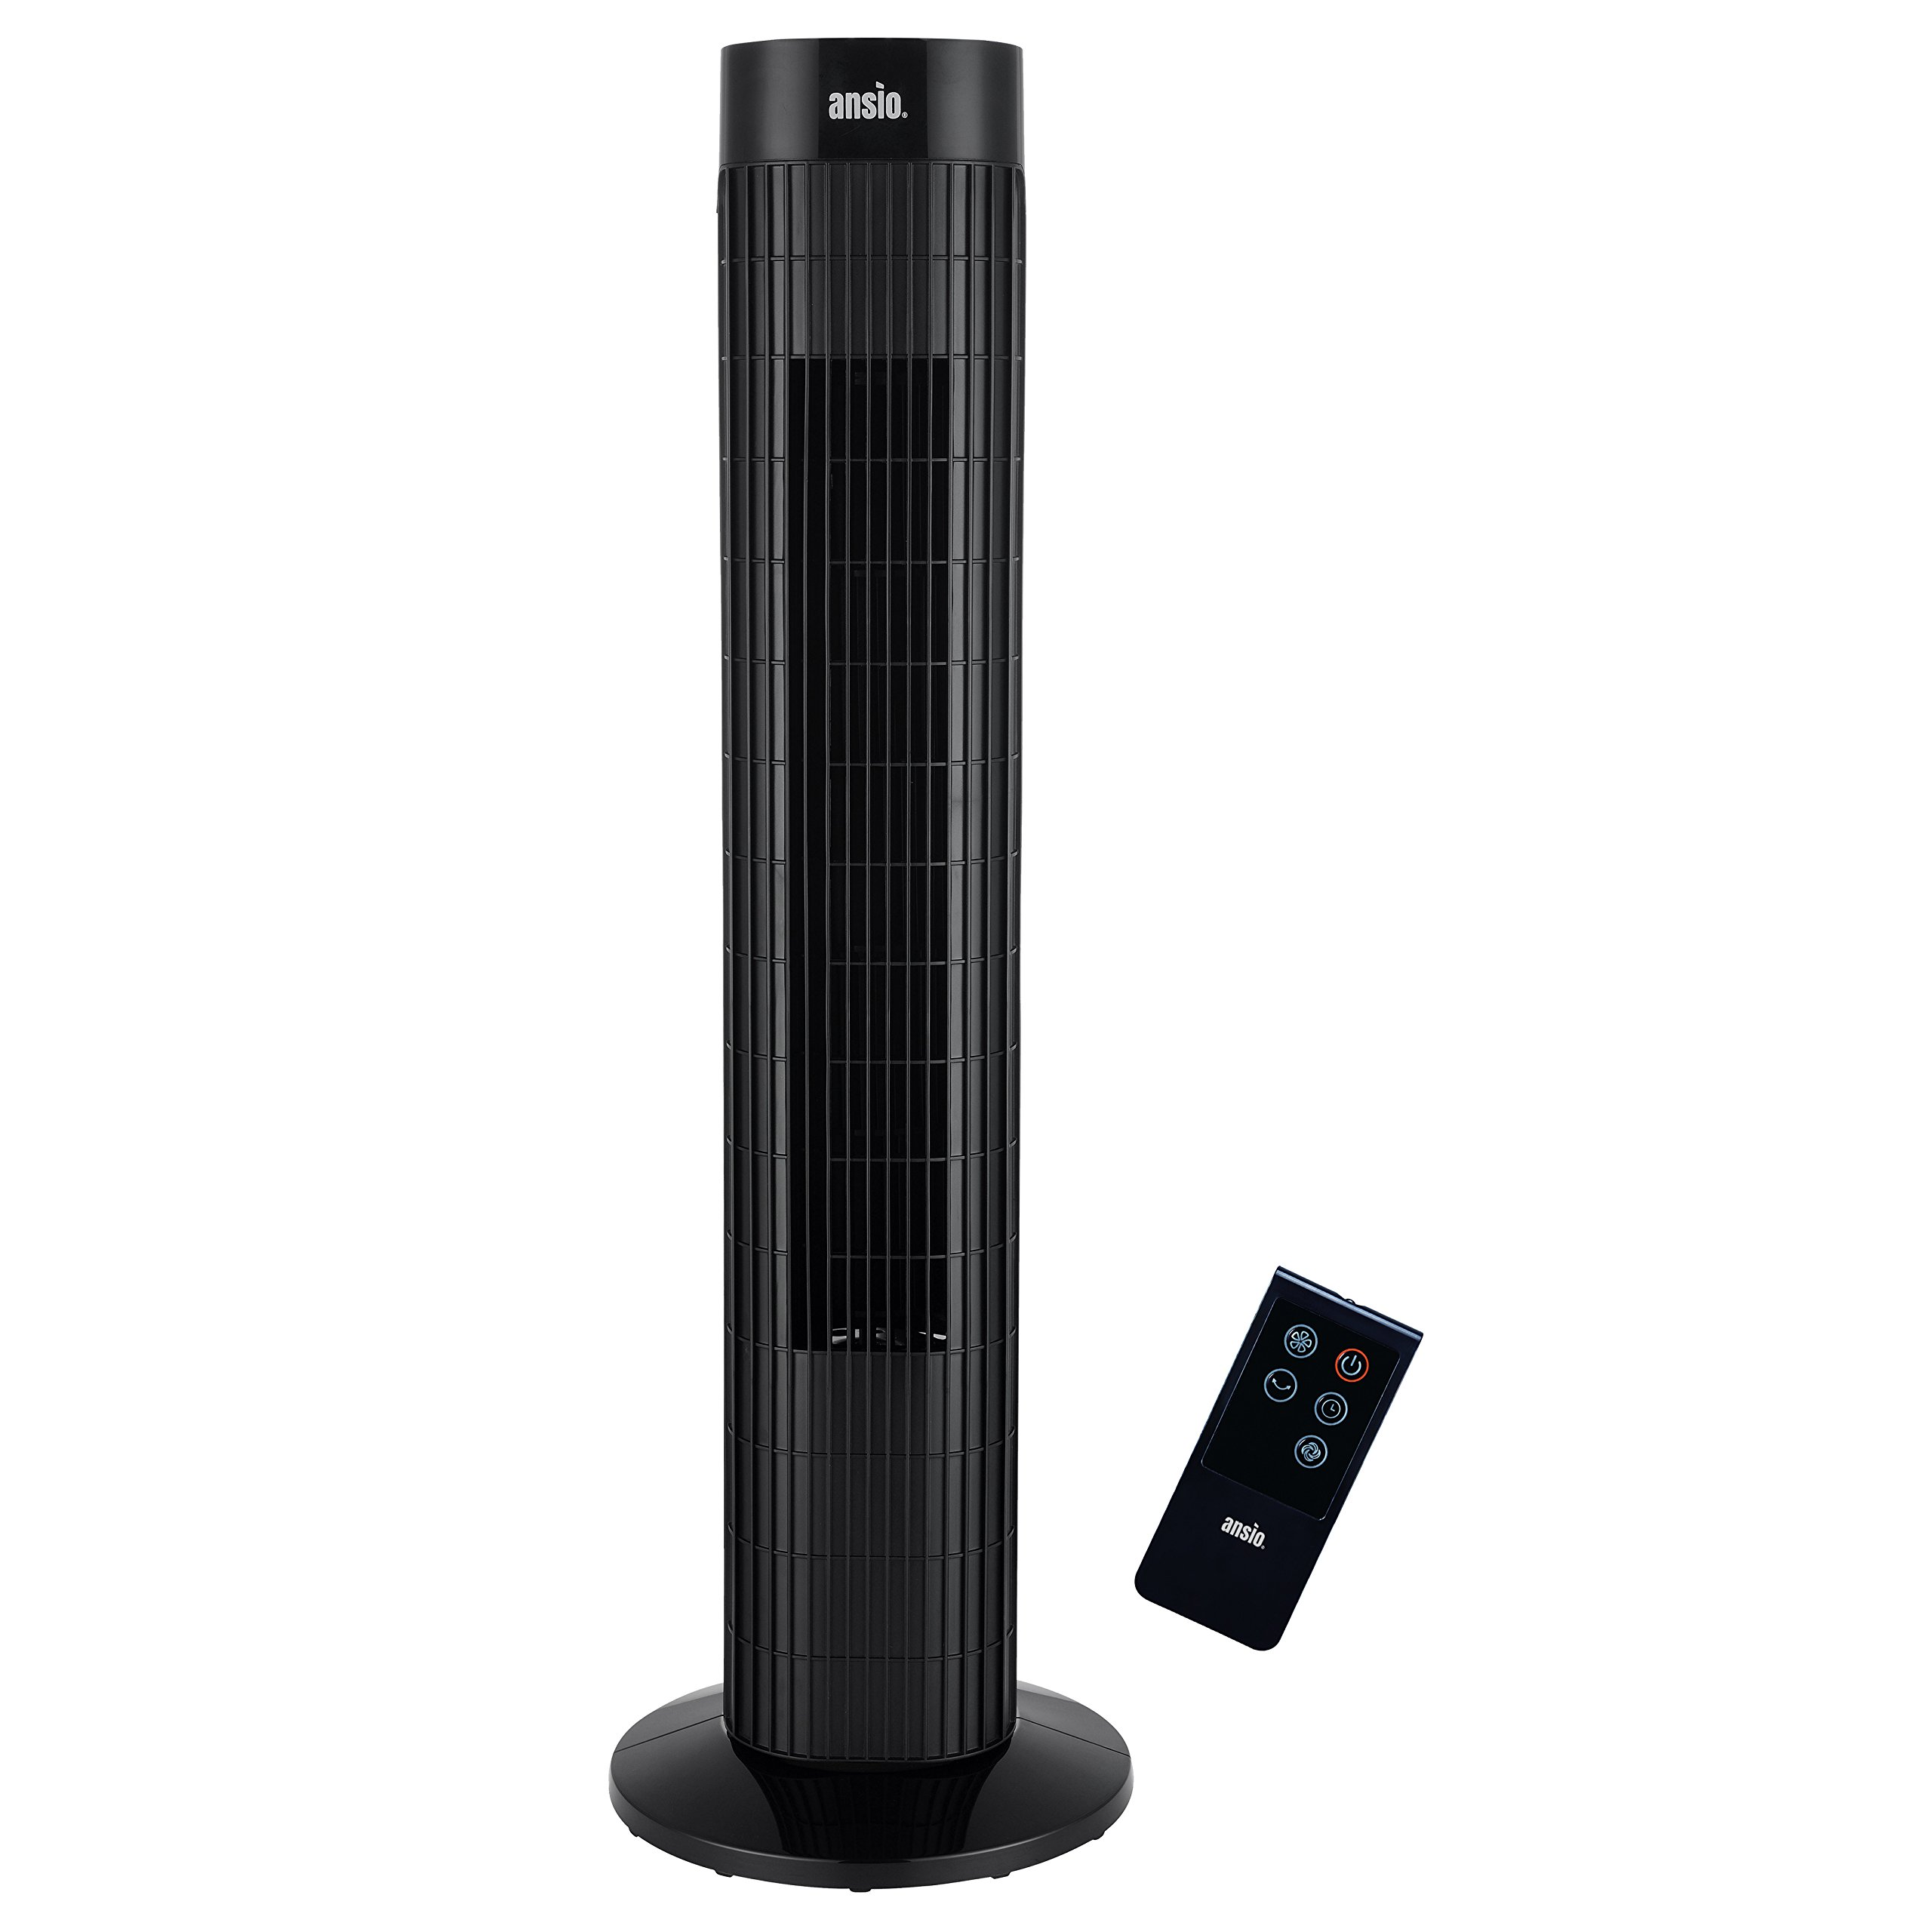 ANSIO Black Oscillating Tower Fan with Remote Control 3-Speed 3-Wind Mode, 30-Inch Ideal for Small Rooms. 2 Year Warranty by ANSIO